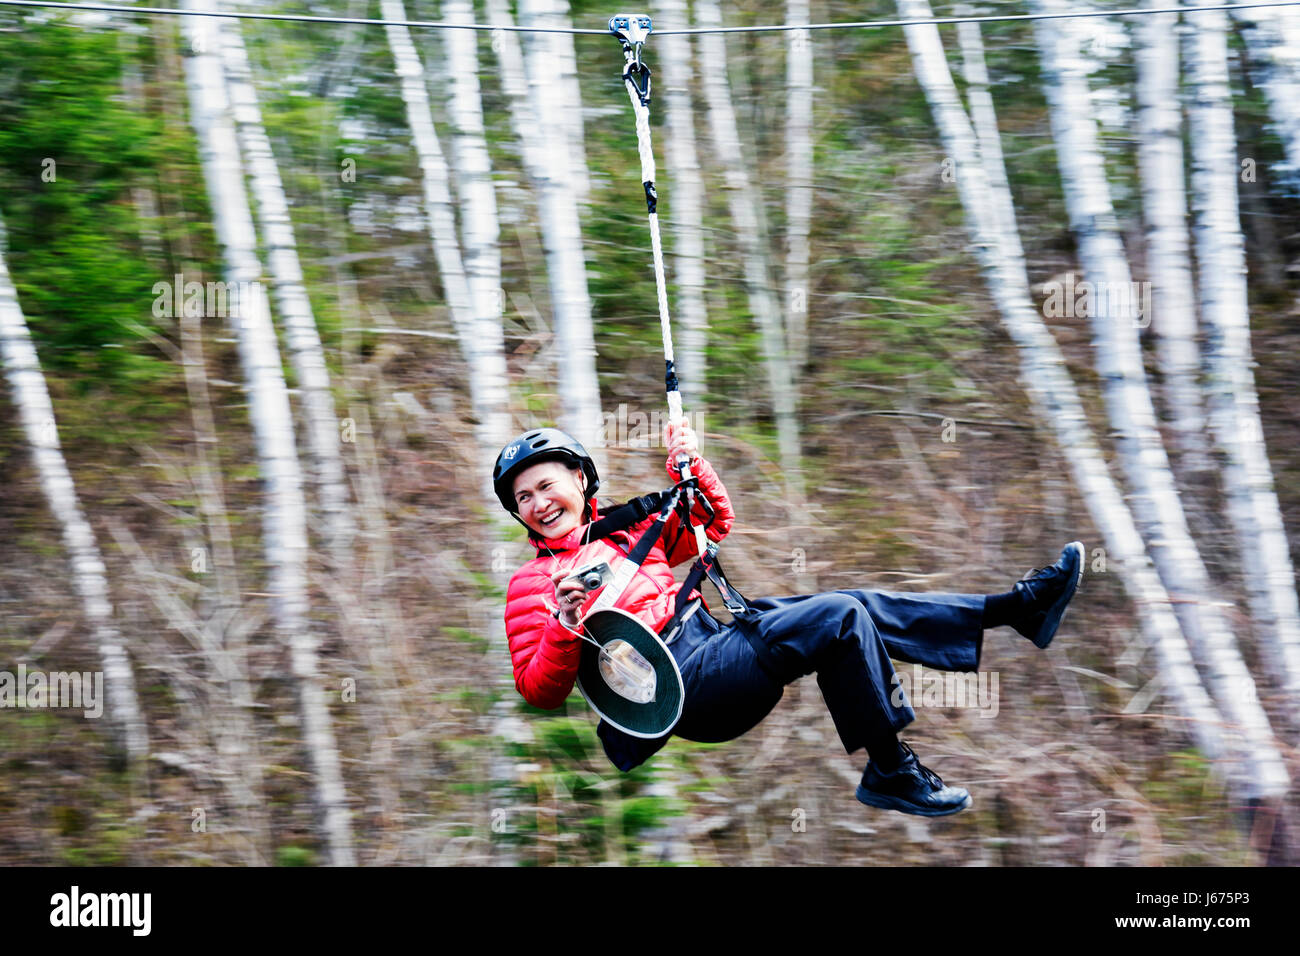 Mackinaw City Michigan Mackinac State Historic Parks Park Historic Mill Creek Discovery Park zip line safety harness - Stock Image